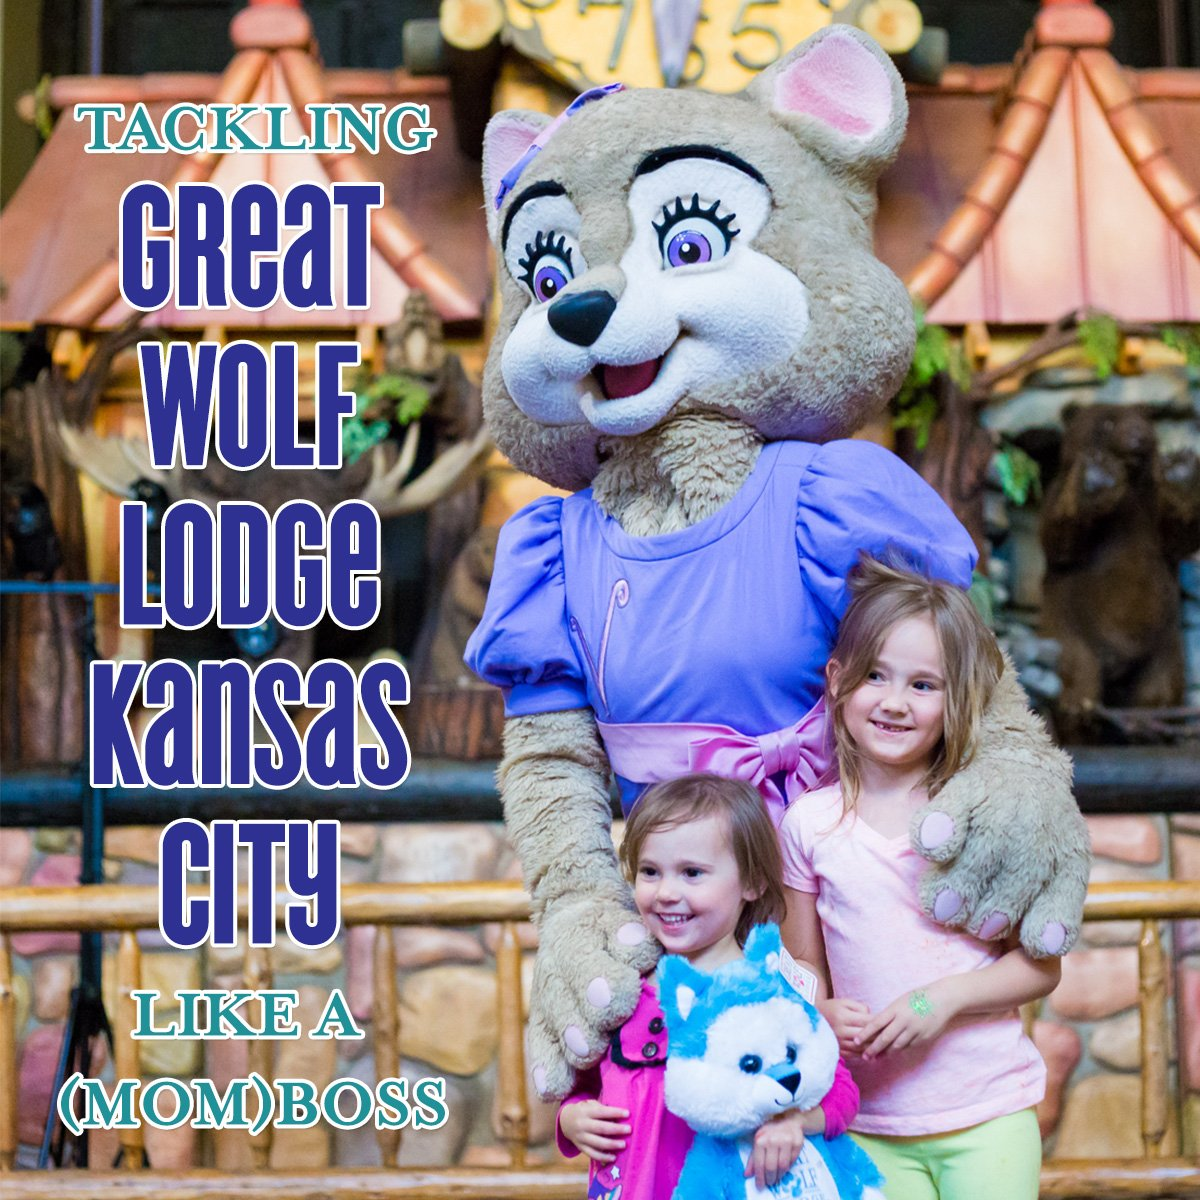 Why You Should Choose Great Wolf Lodge As Your Next Family Vacation Spot